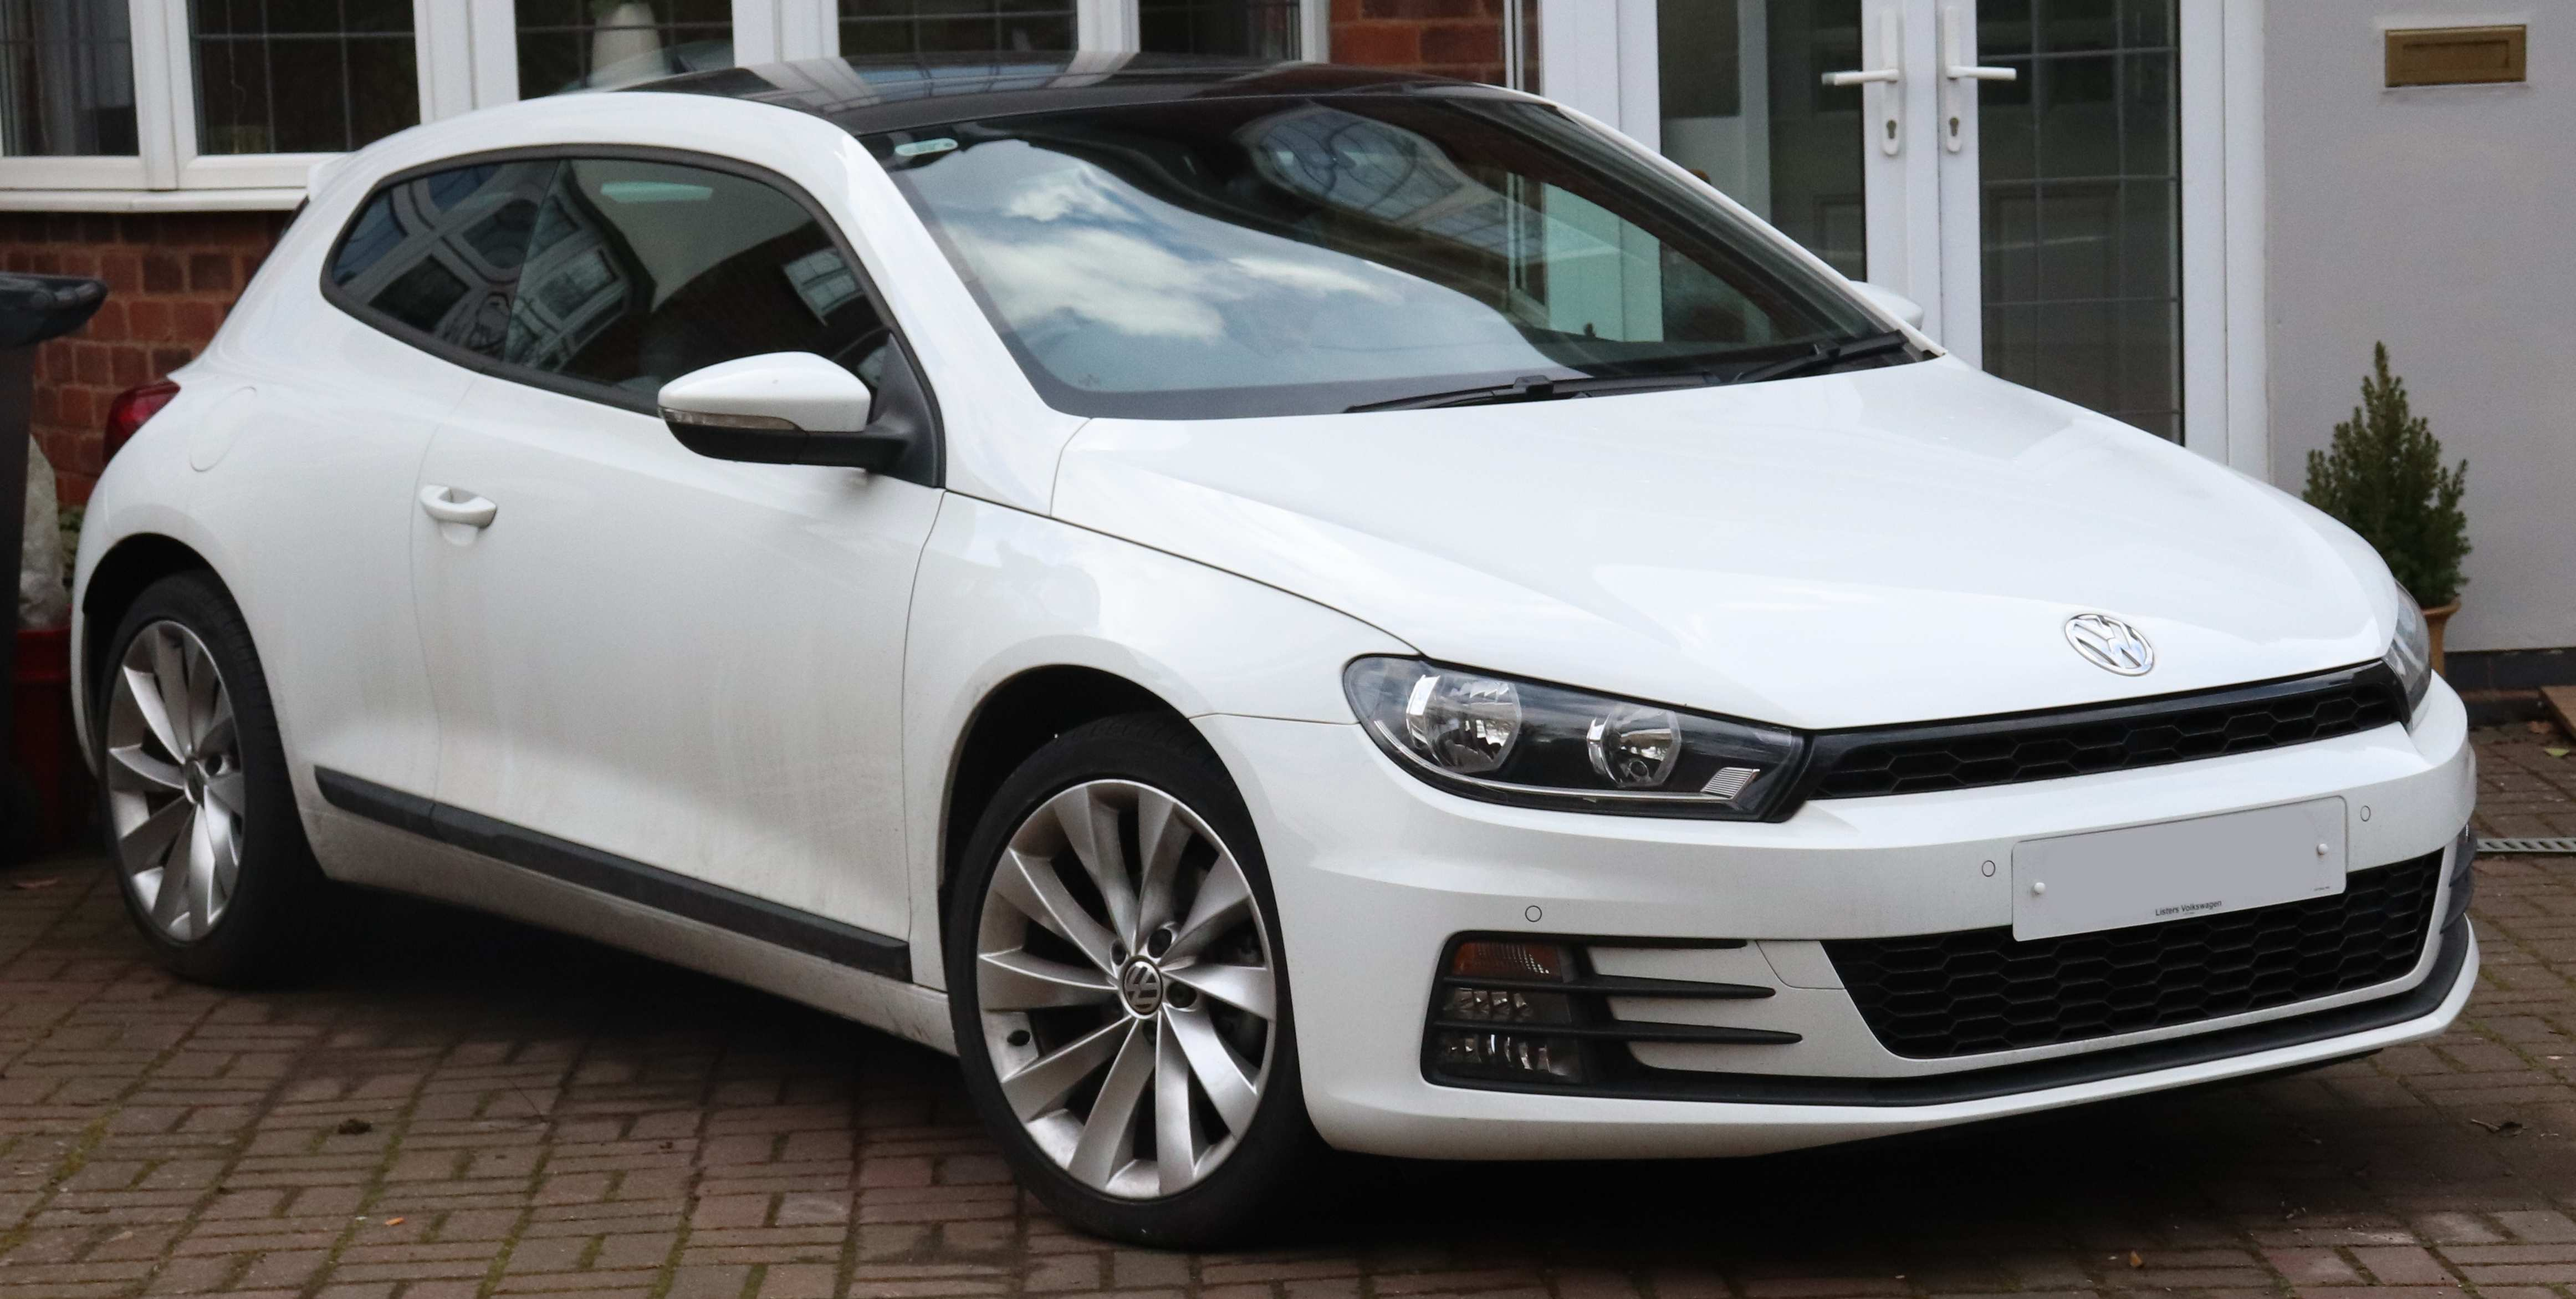 71 A Vw Scirocco 2019 Redesign And Review